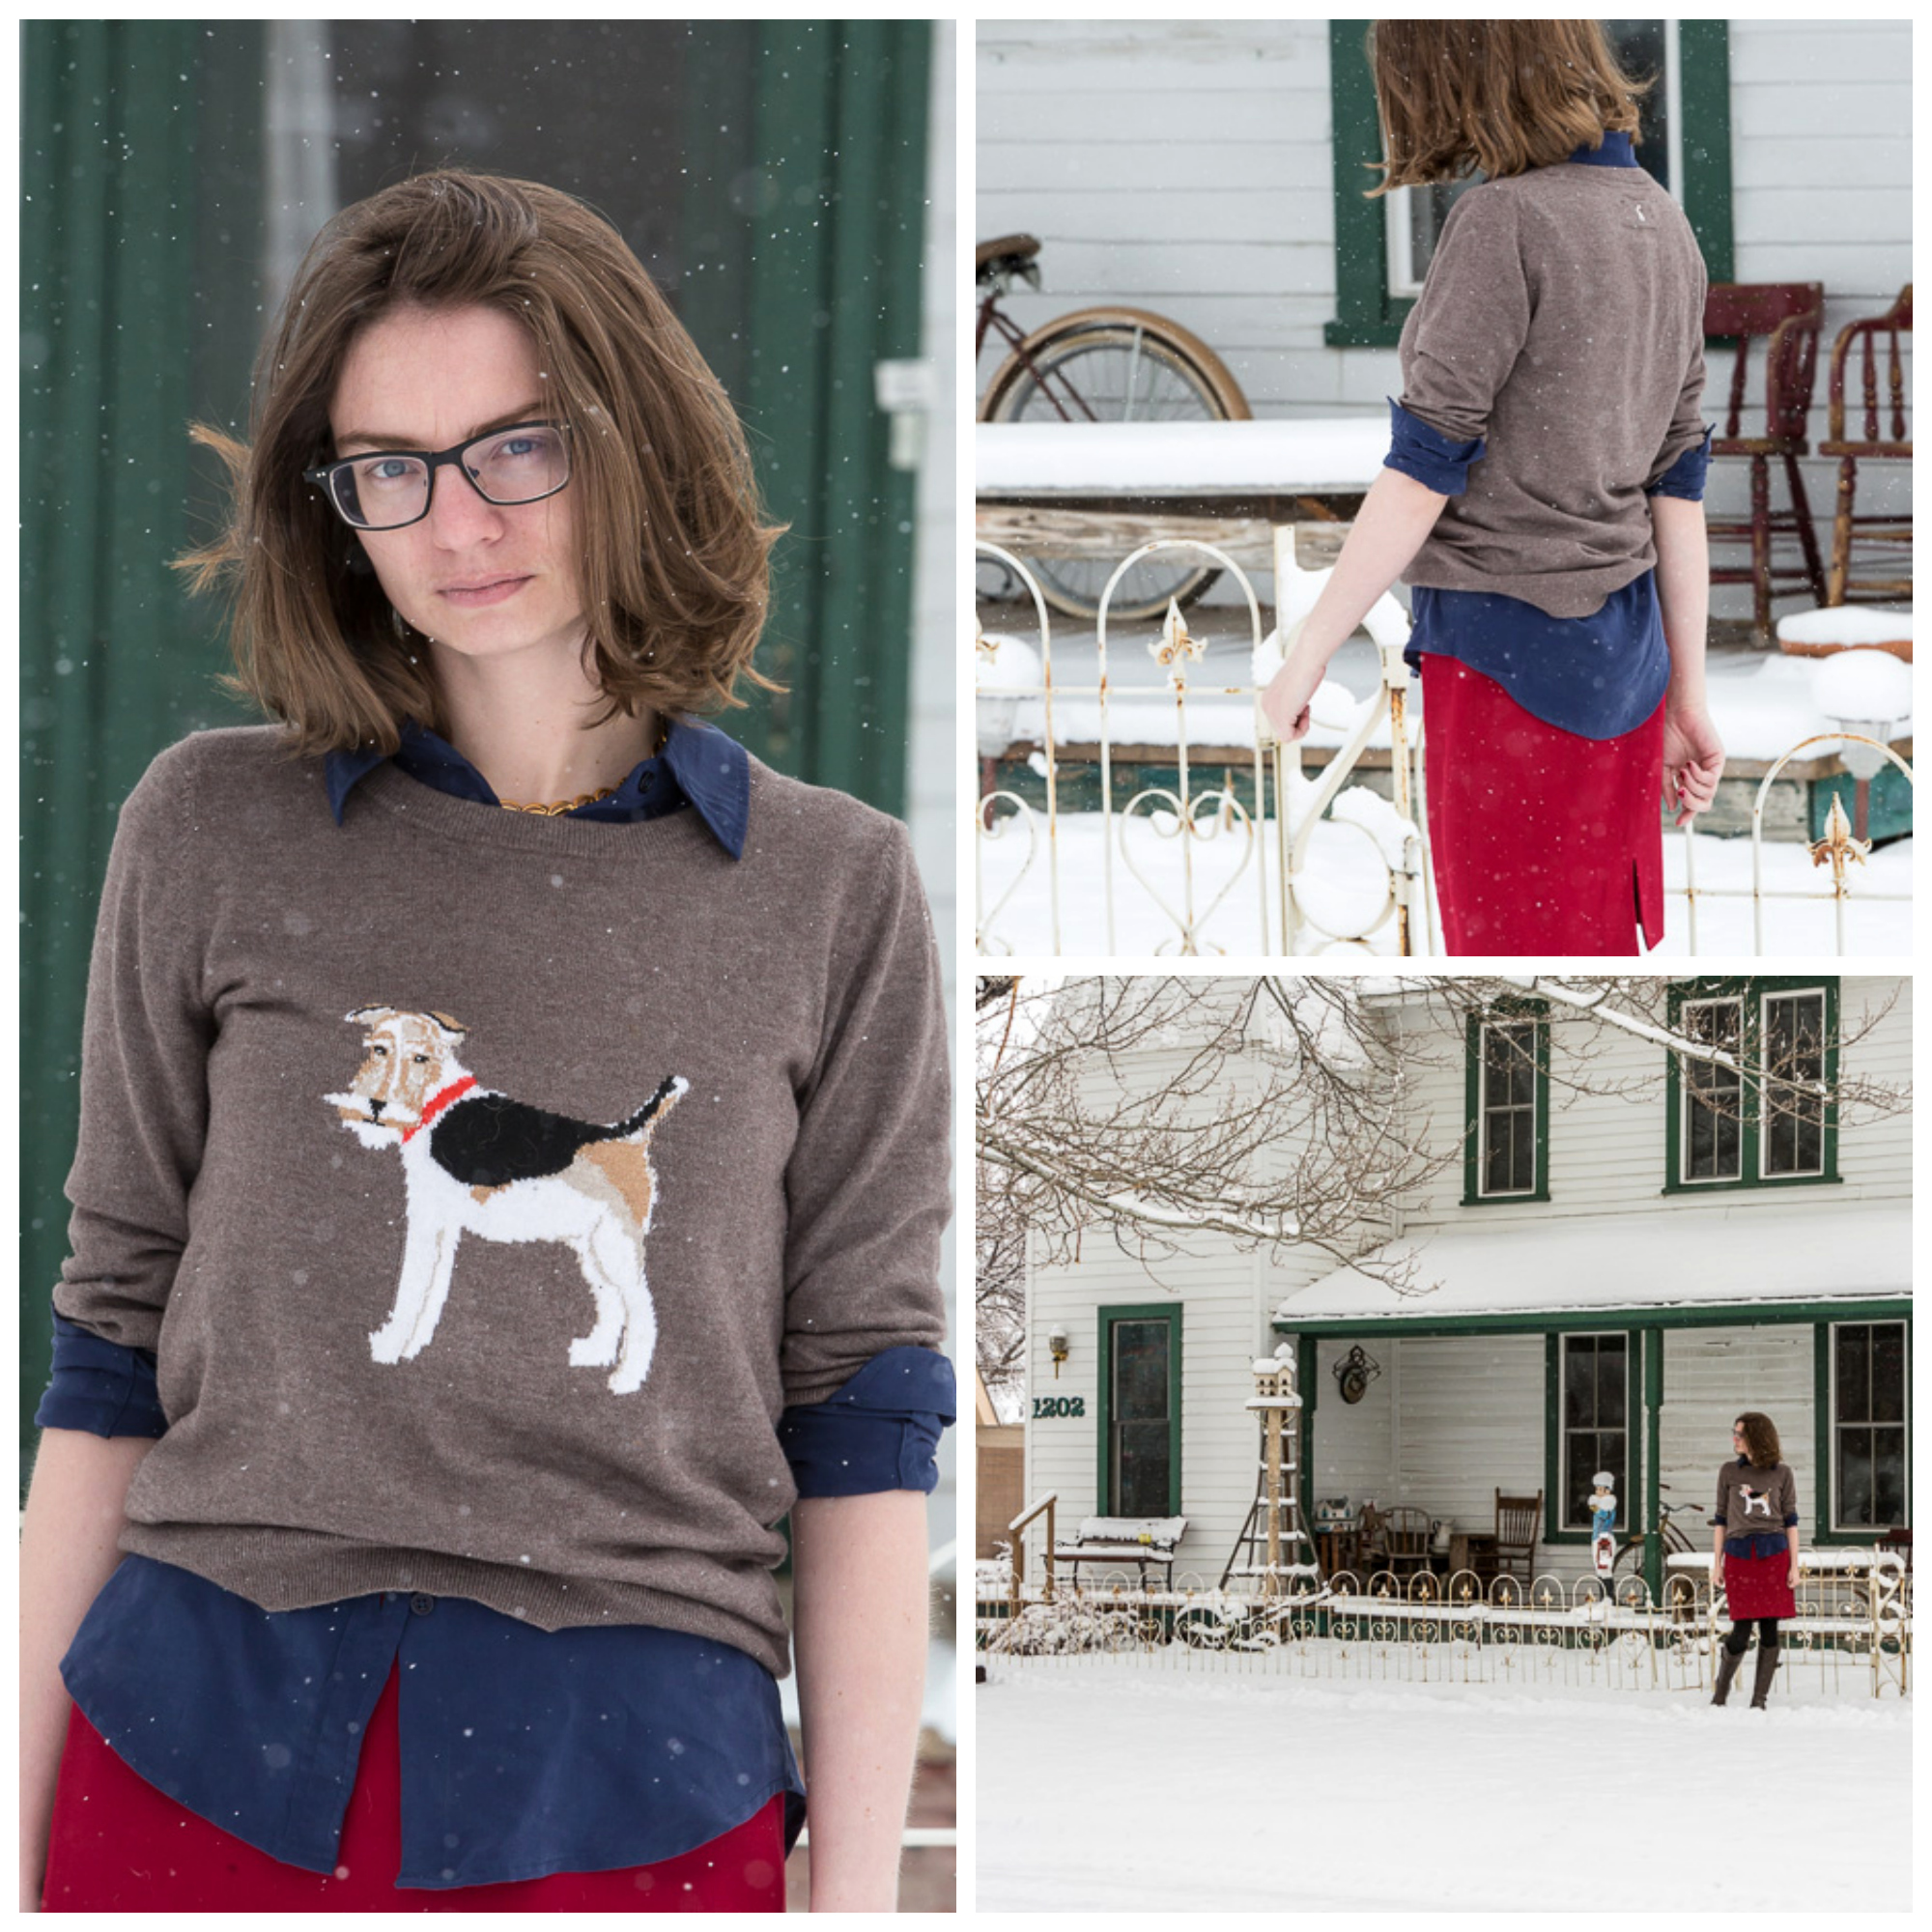 Fox Terrier Sweater, popbasic, silk shirt, red pencil skirt, outfit, never fully dressed, withoutastyle, wyoming